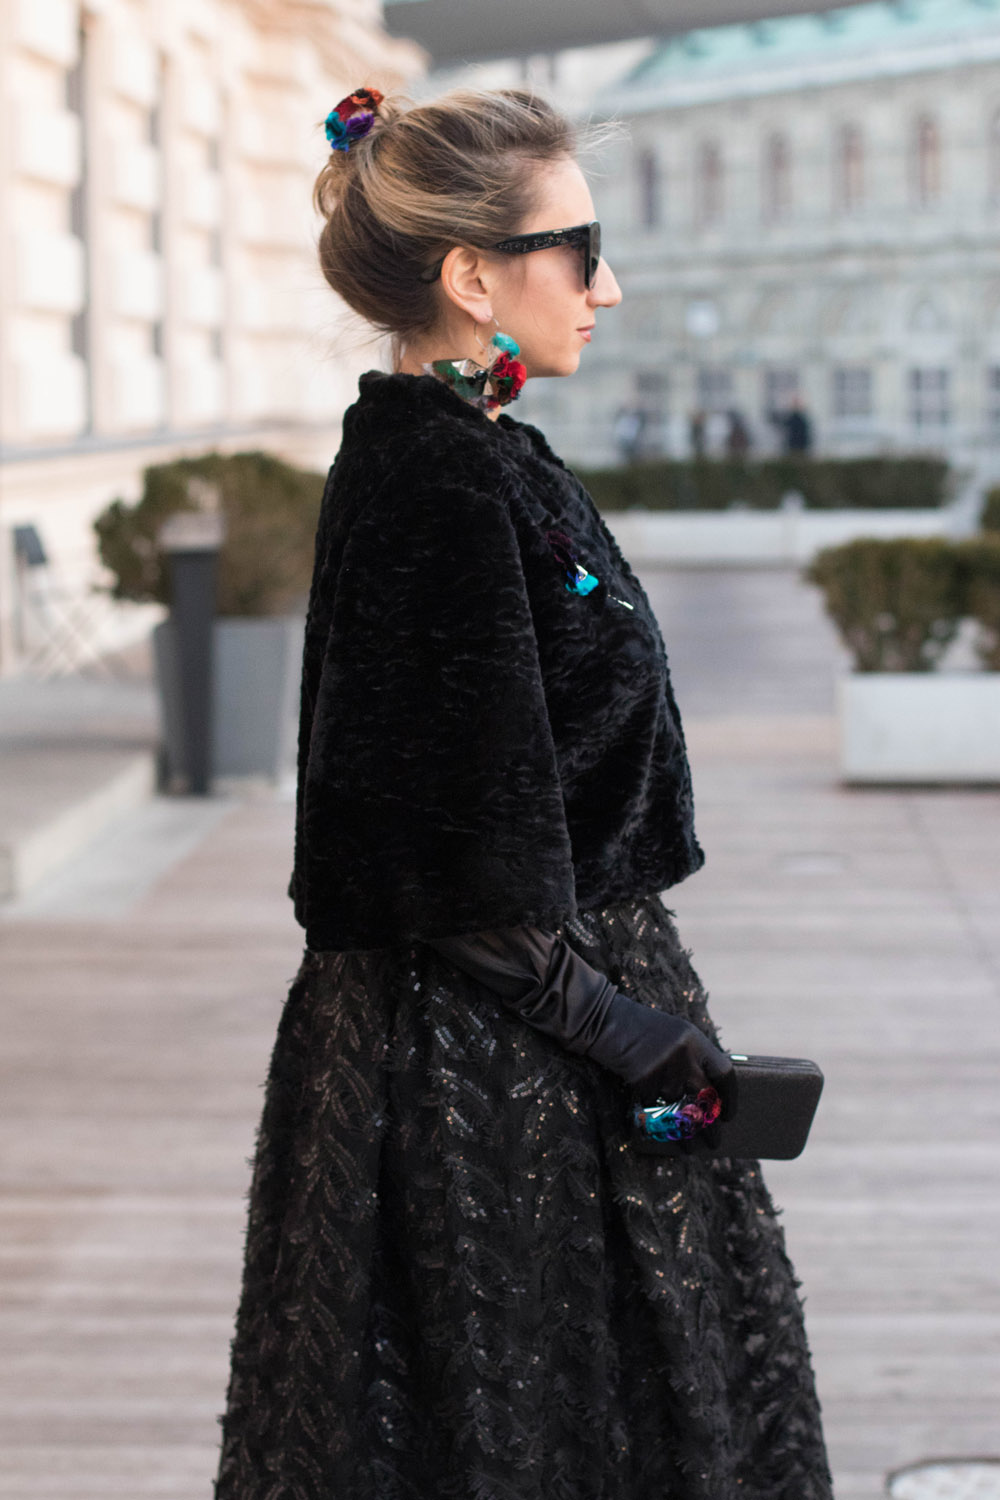 colourclub-fashionblog-outfit-ballkleid-neckholder-dress-ballgiude-miu-miu-sunglasses-vienna-opera2